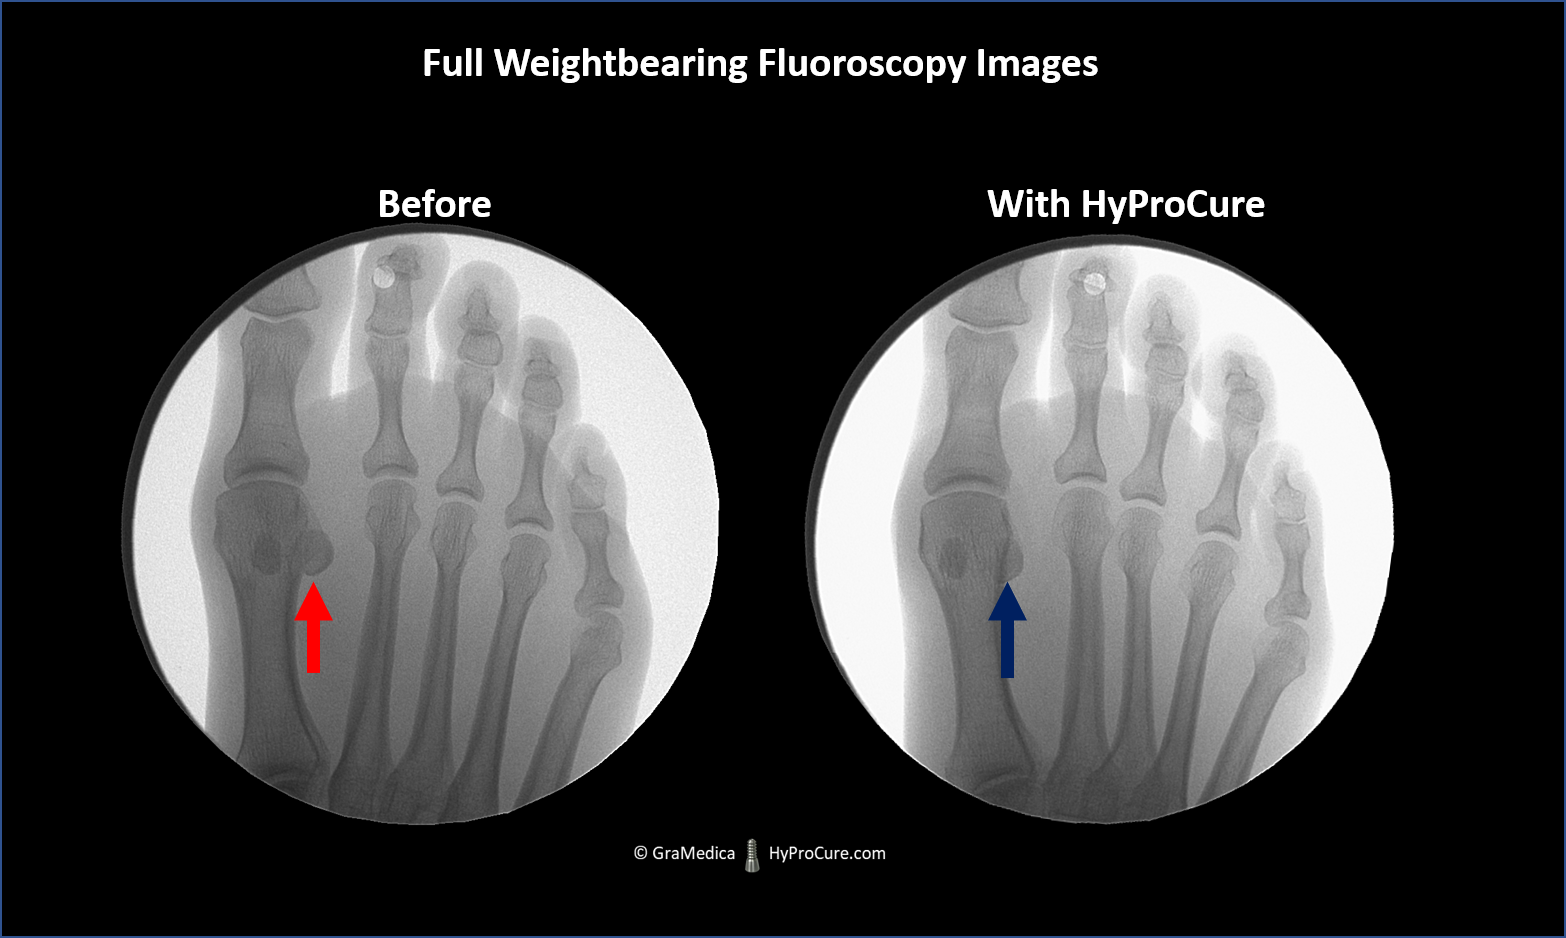 fluoroscopic x-ray forefoot images of the same person before and after HyProCure